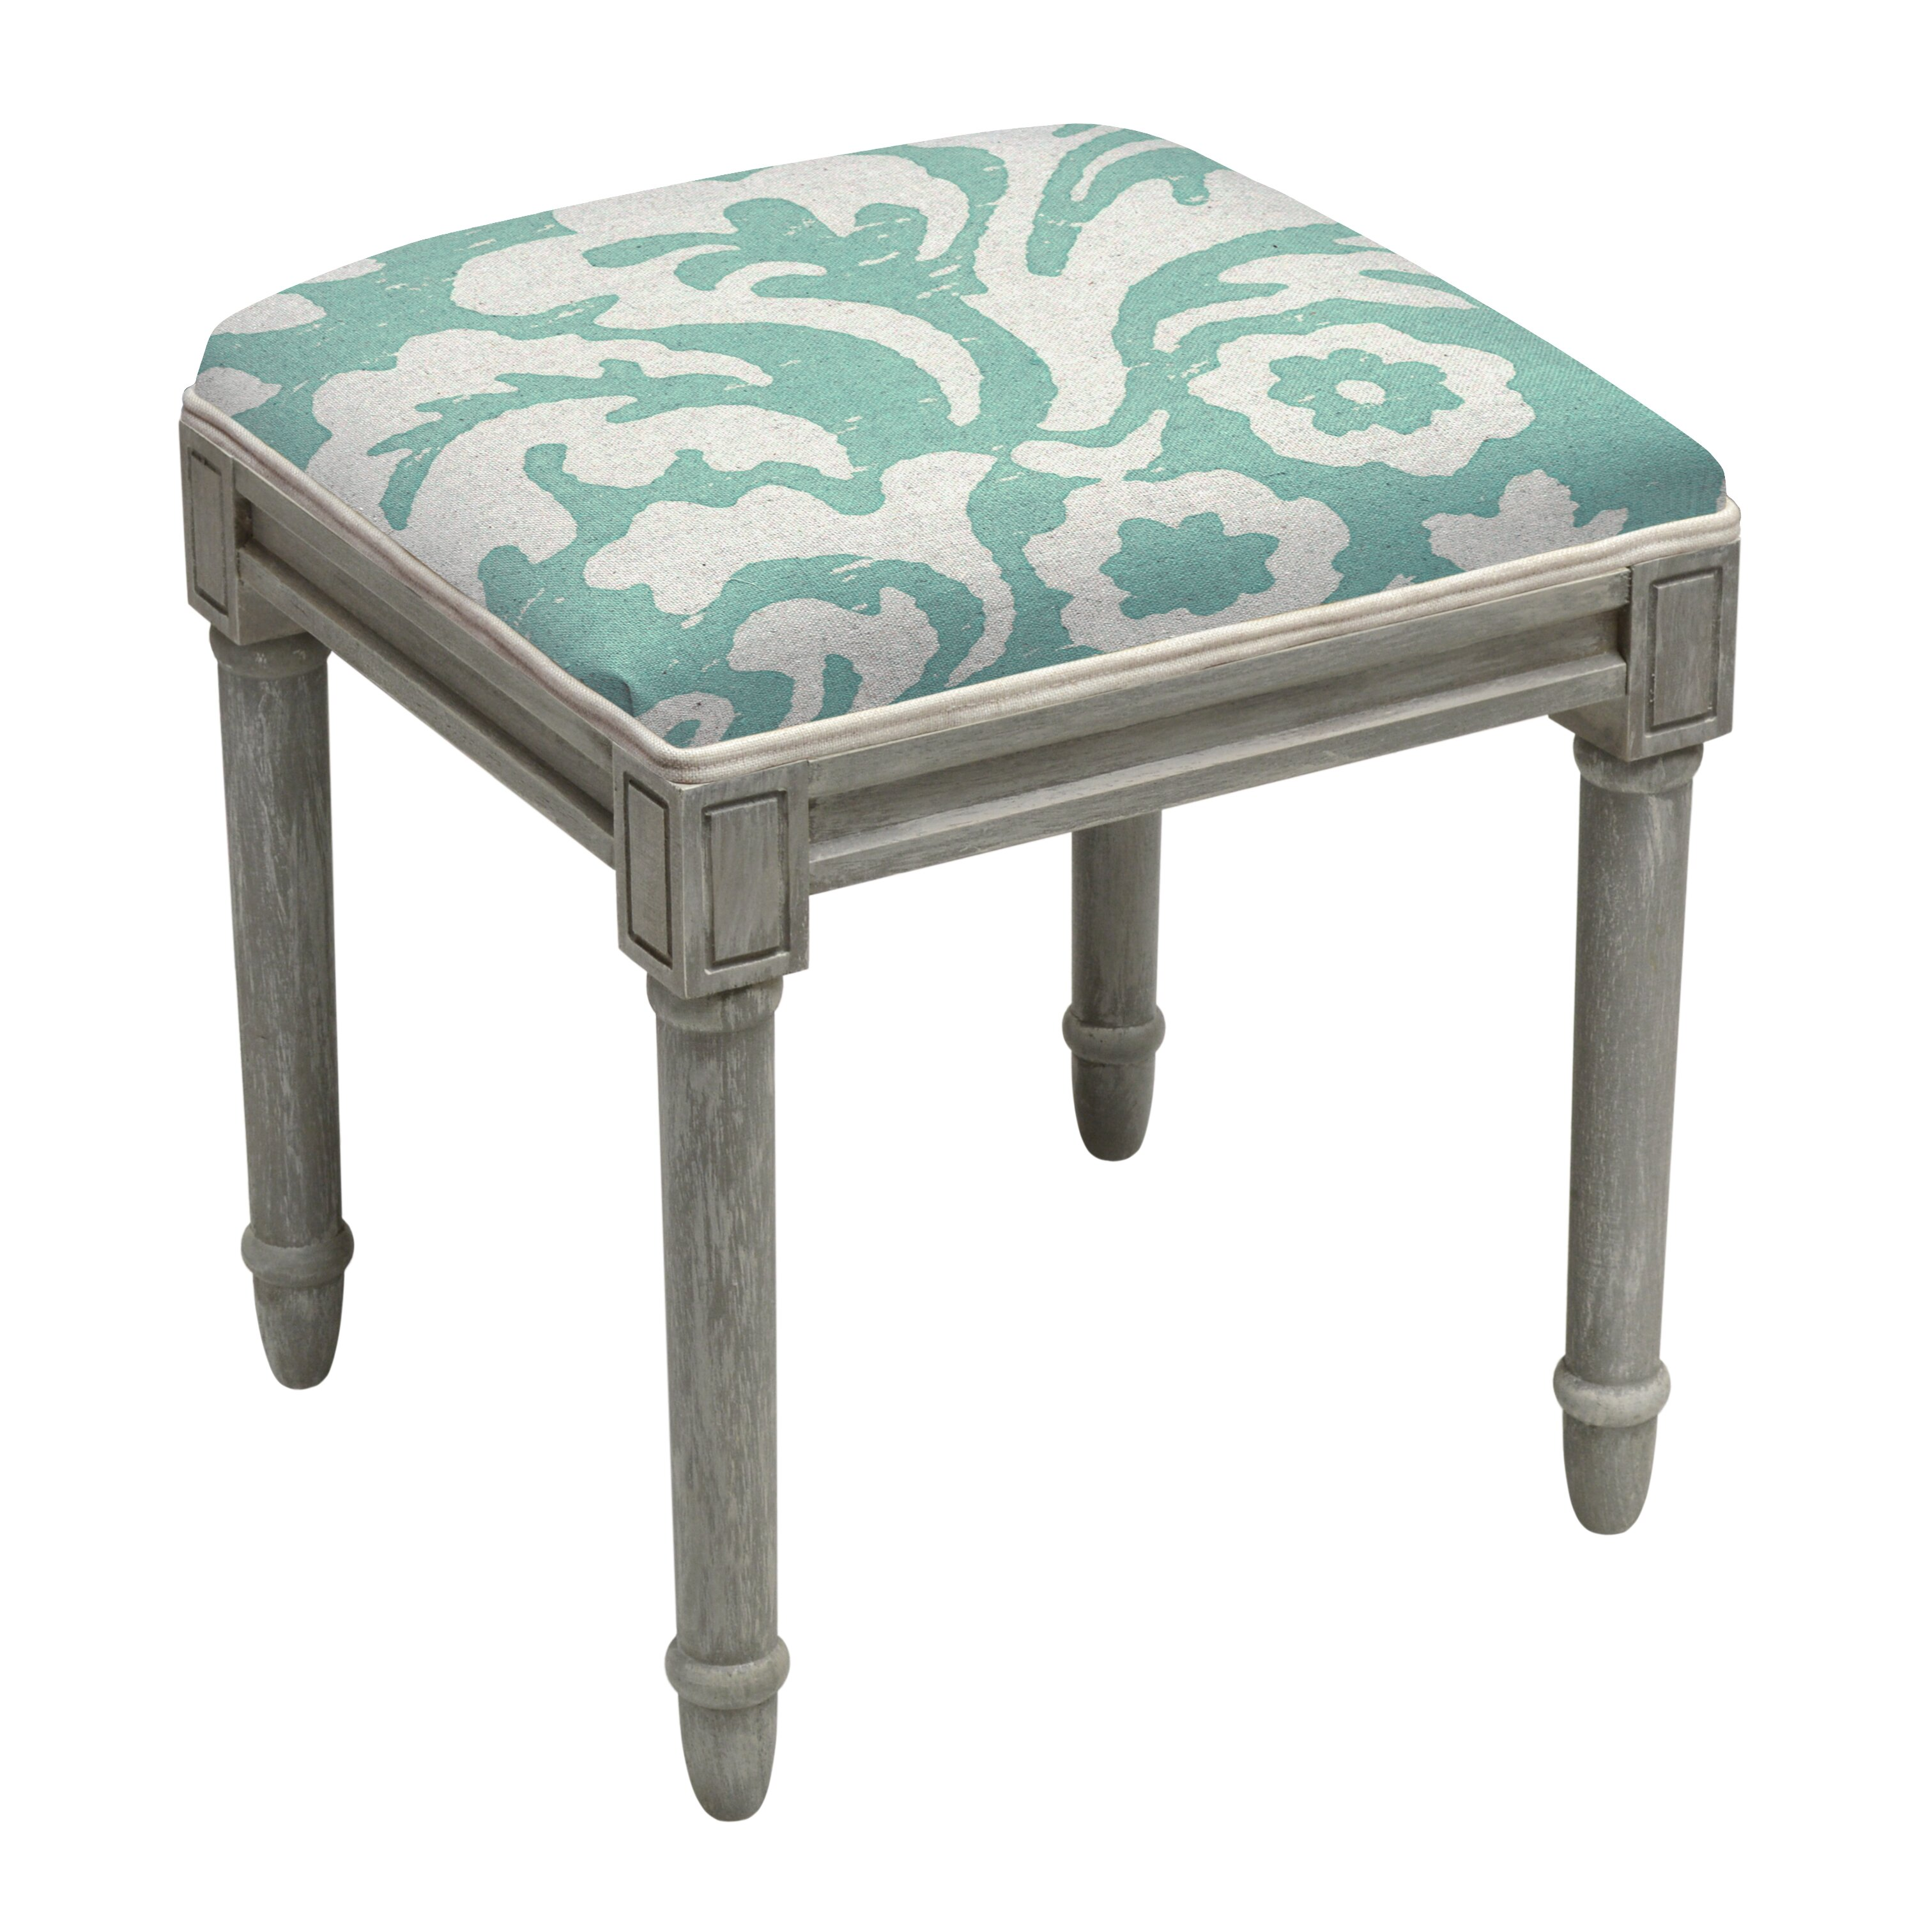 123 Creations Jacobean Floral Upholstered Wooden Vanity